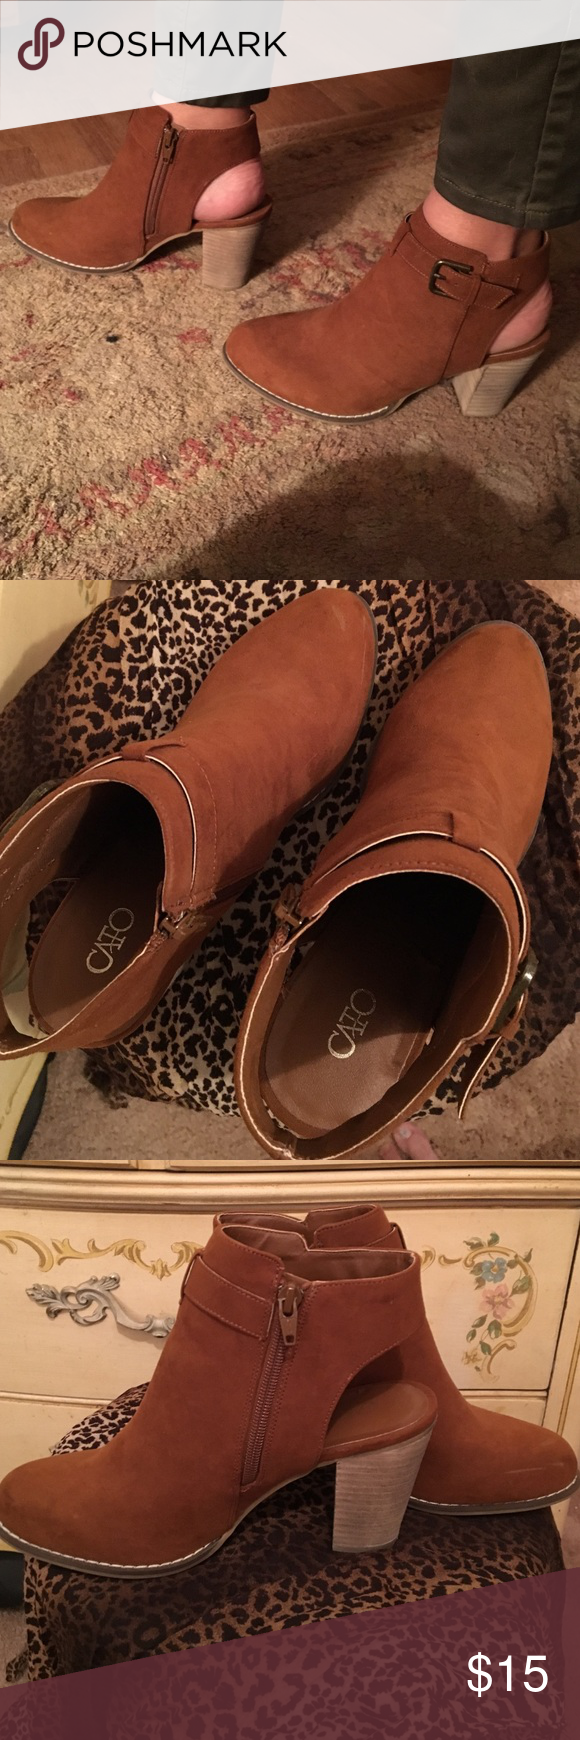 Ankle boots Camel brown faux swede with a 3 inch heel. Worn once. I'd like to be the girl who wears heels, but alas...I am not. Lol Cato Shoes Ankle Boots & Booties